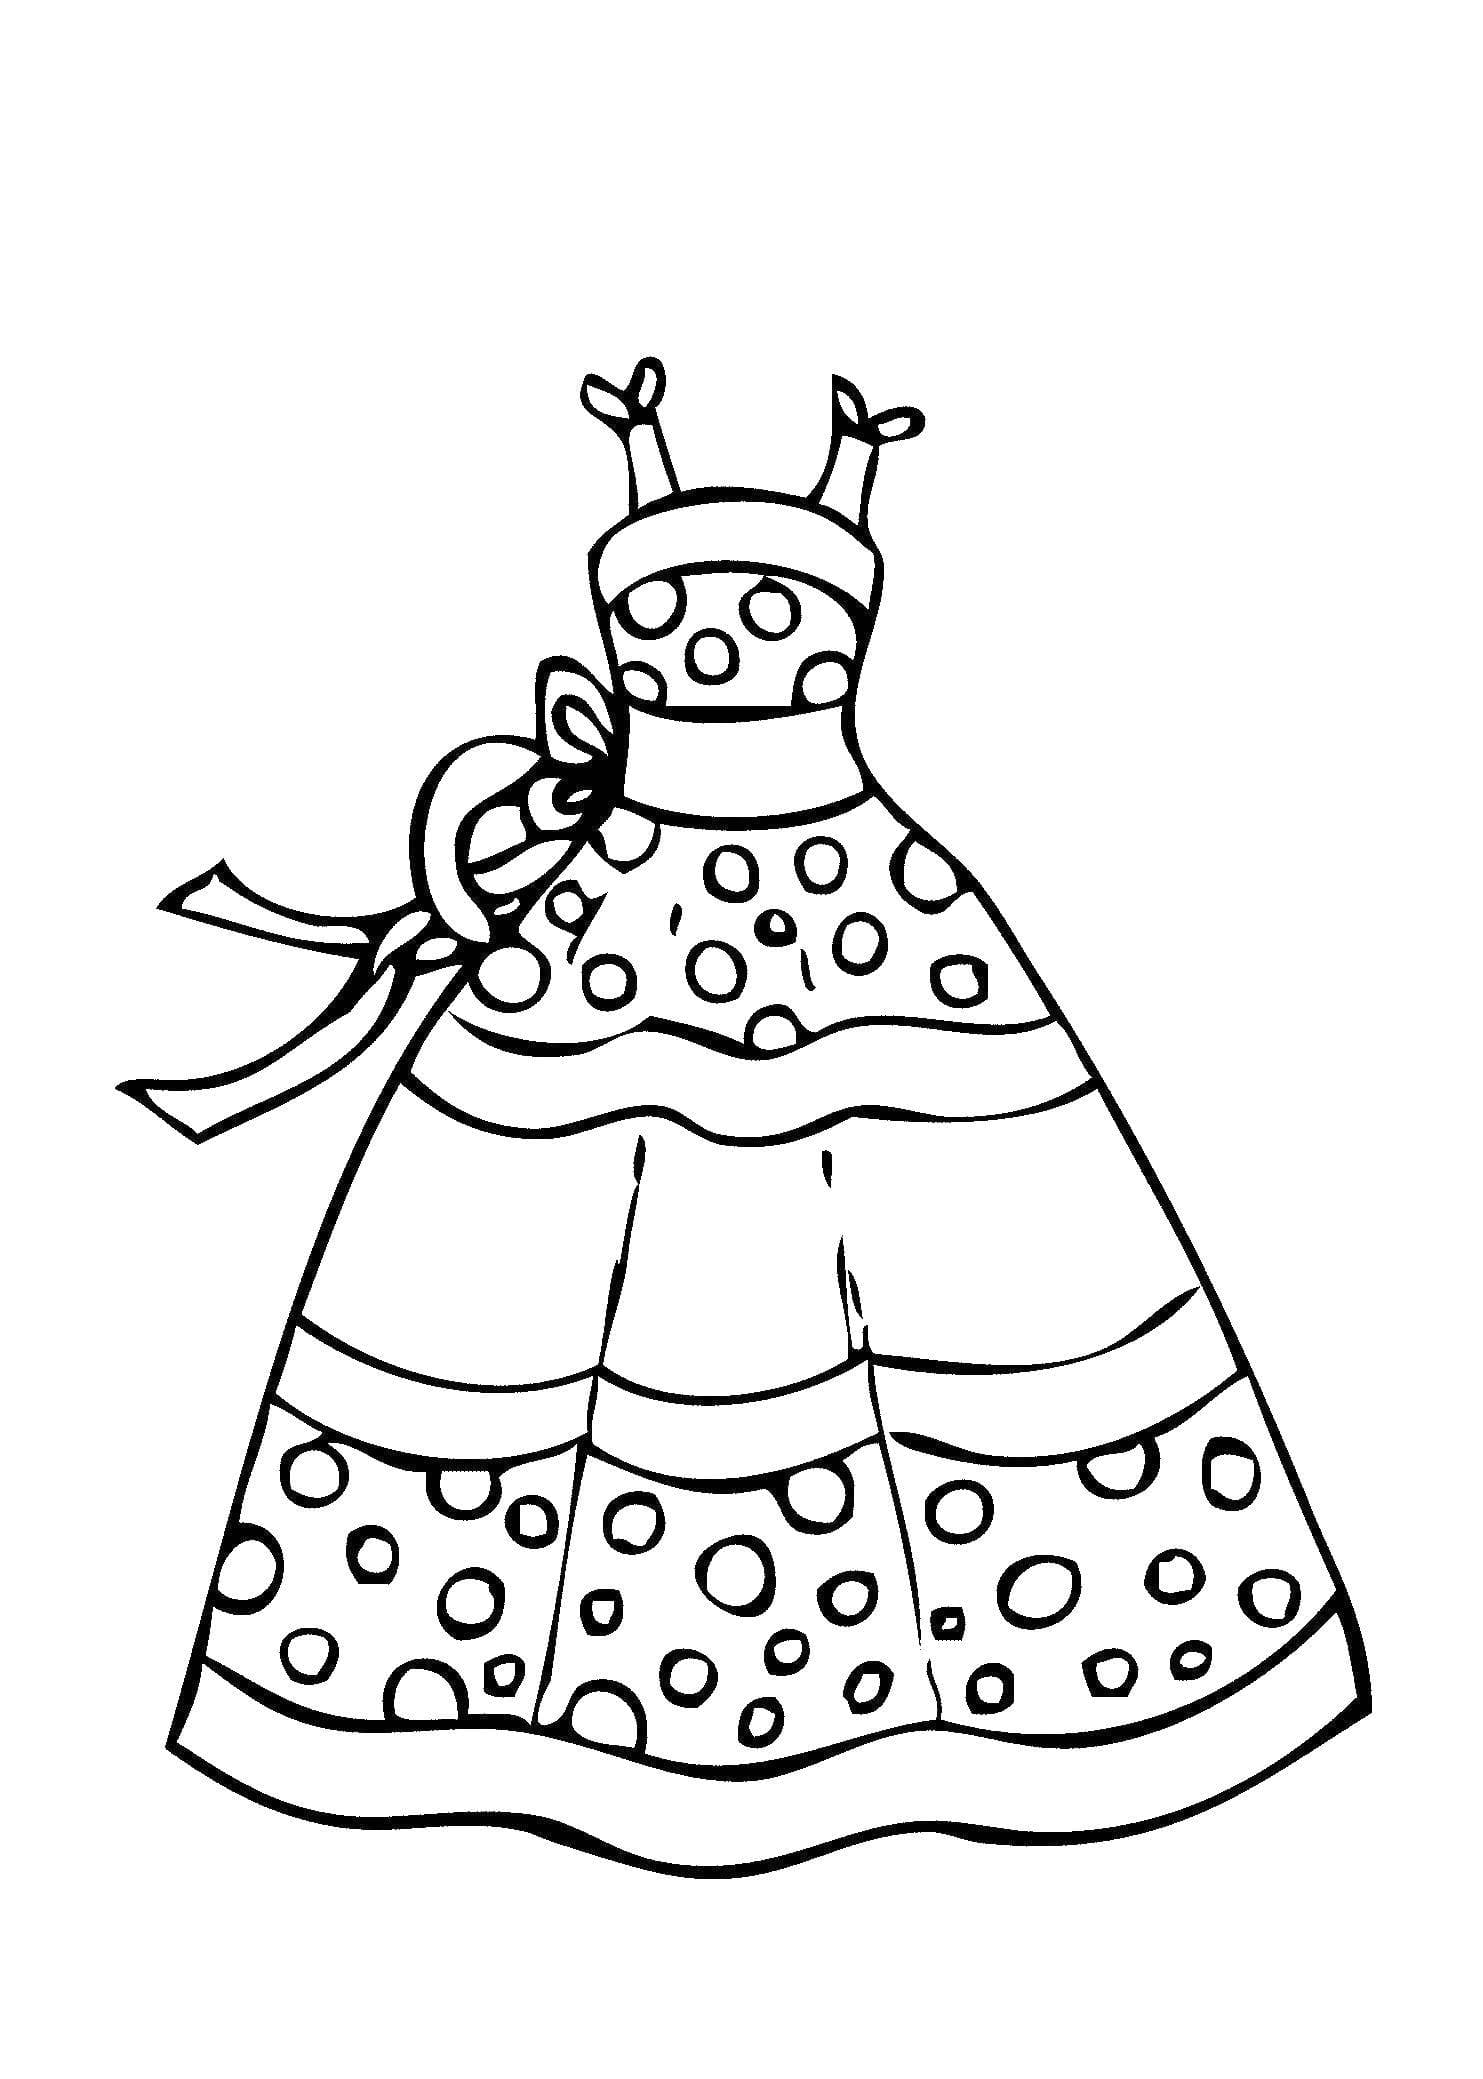 Clothes » Coloring Pages » Surfnetkids | 2079x1483